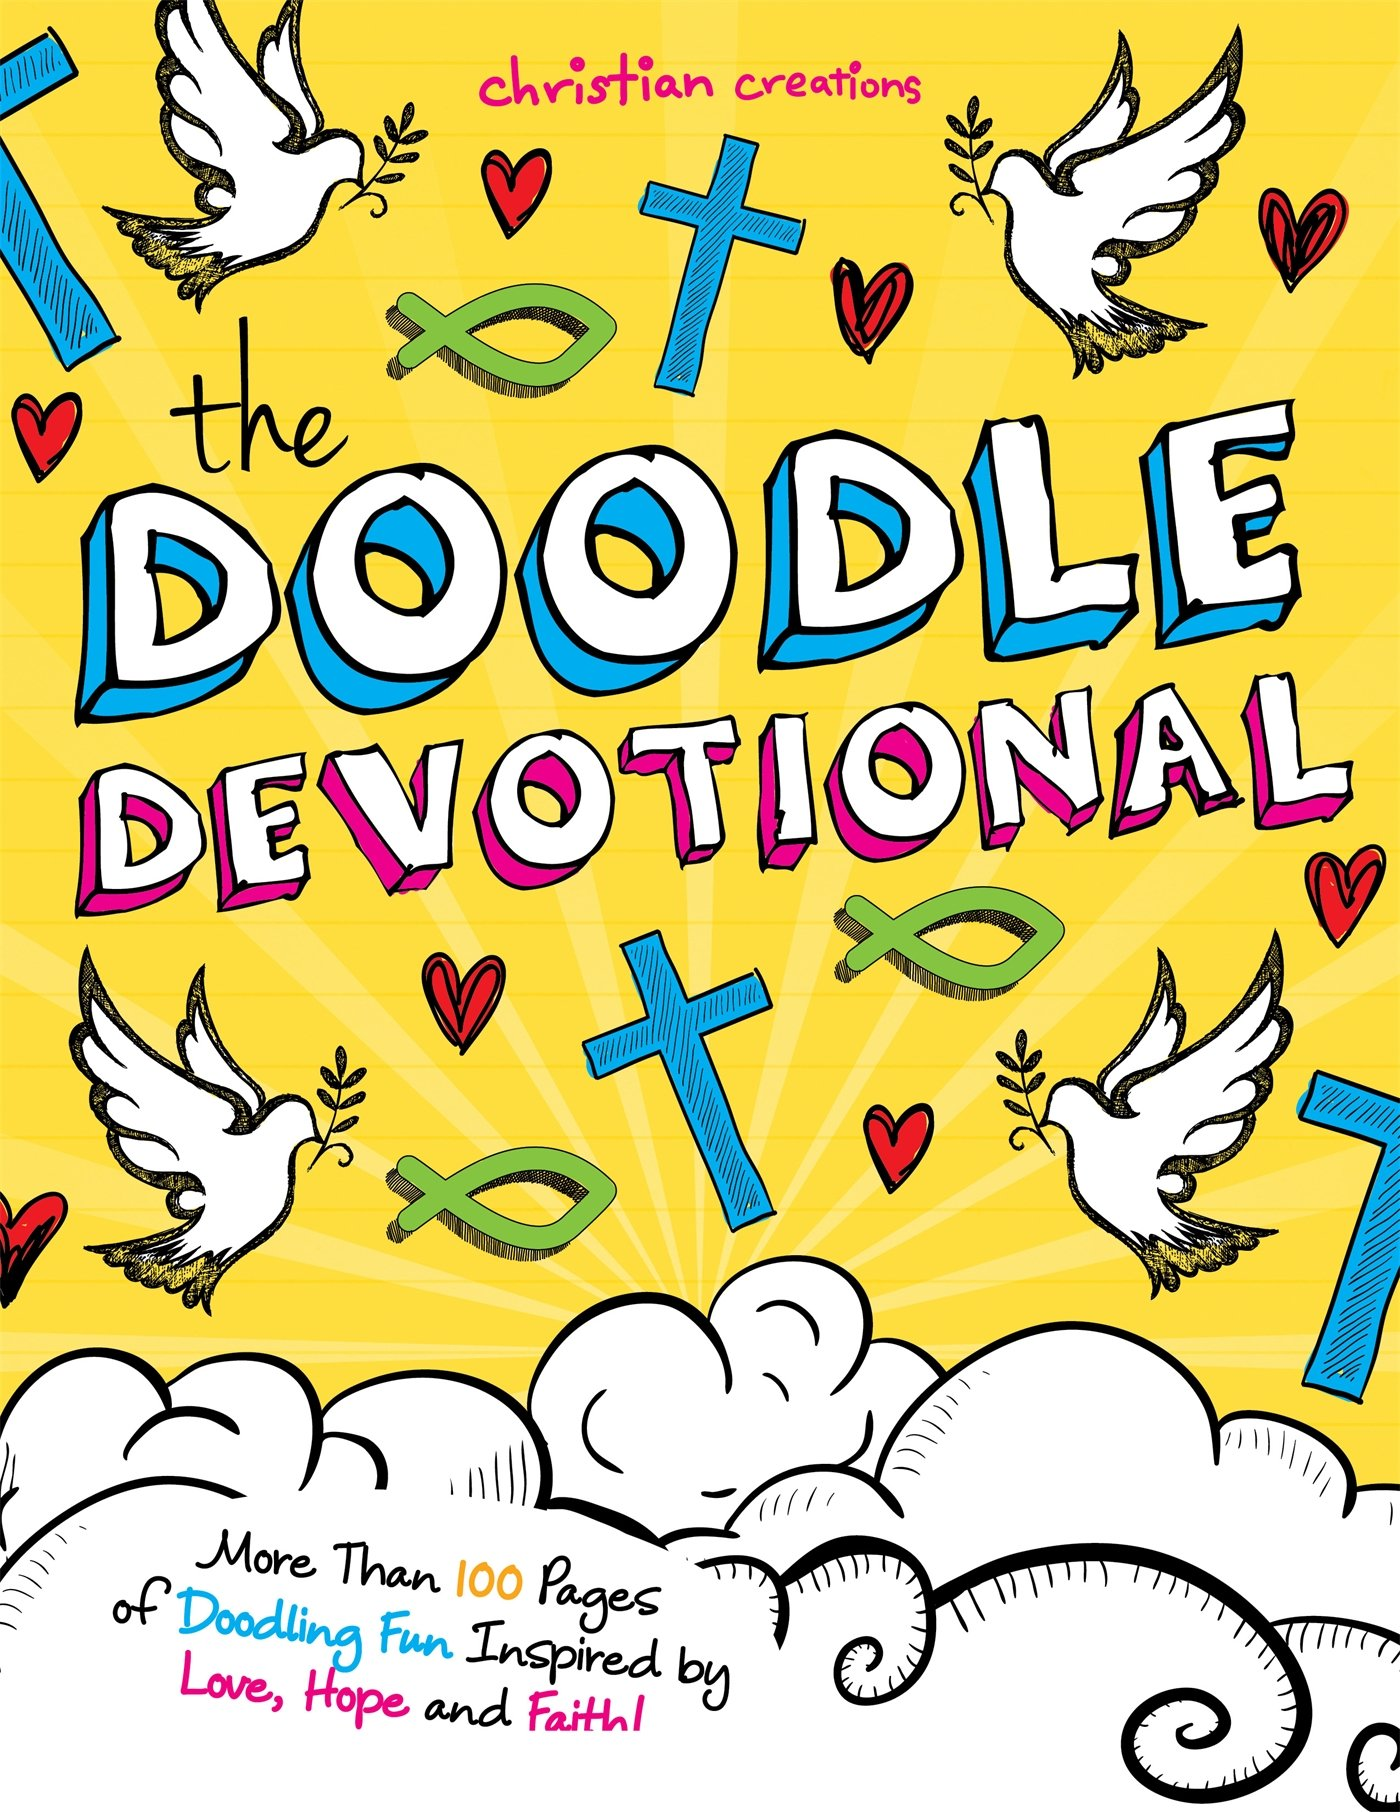 the-doodle-devotional-more-than-100-pages-of-doodling-fun-inspired-by-love-hope-and-faith-christian-creations